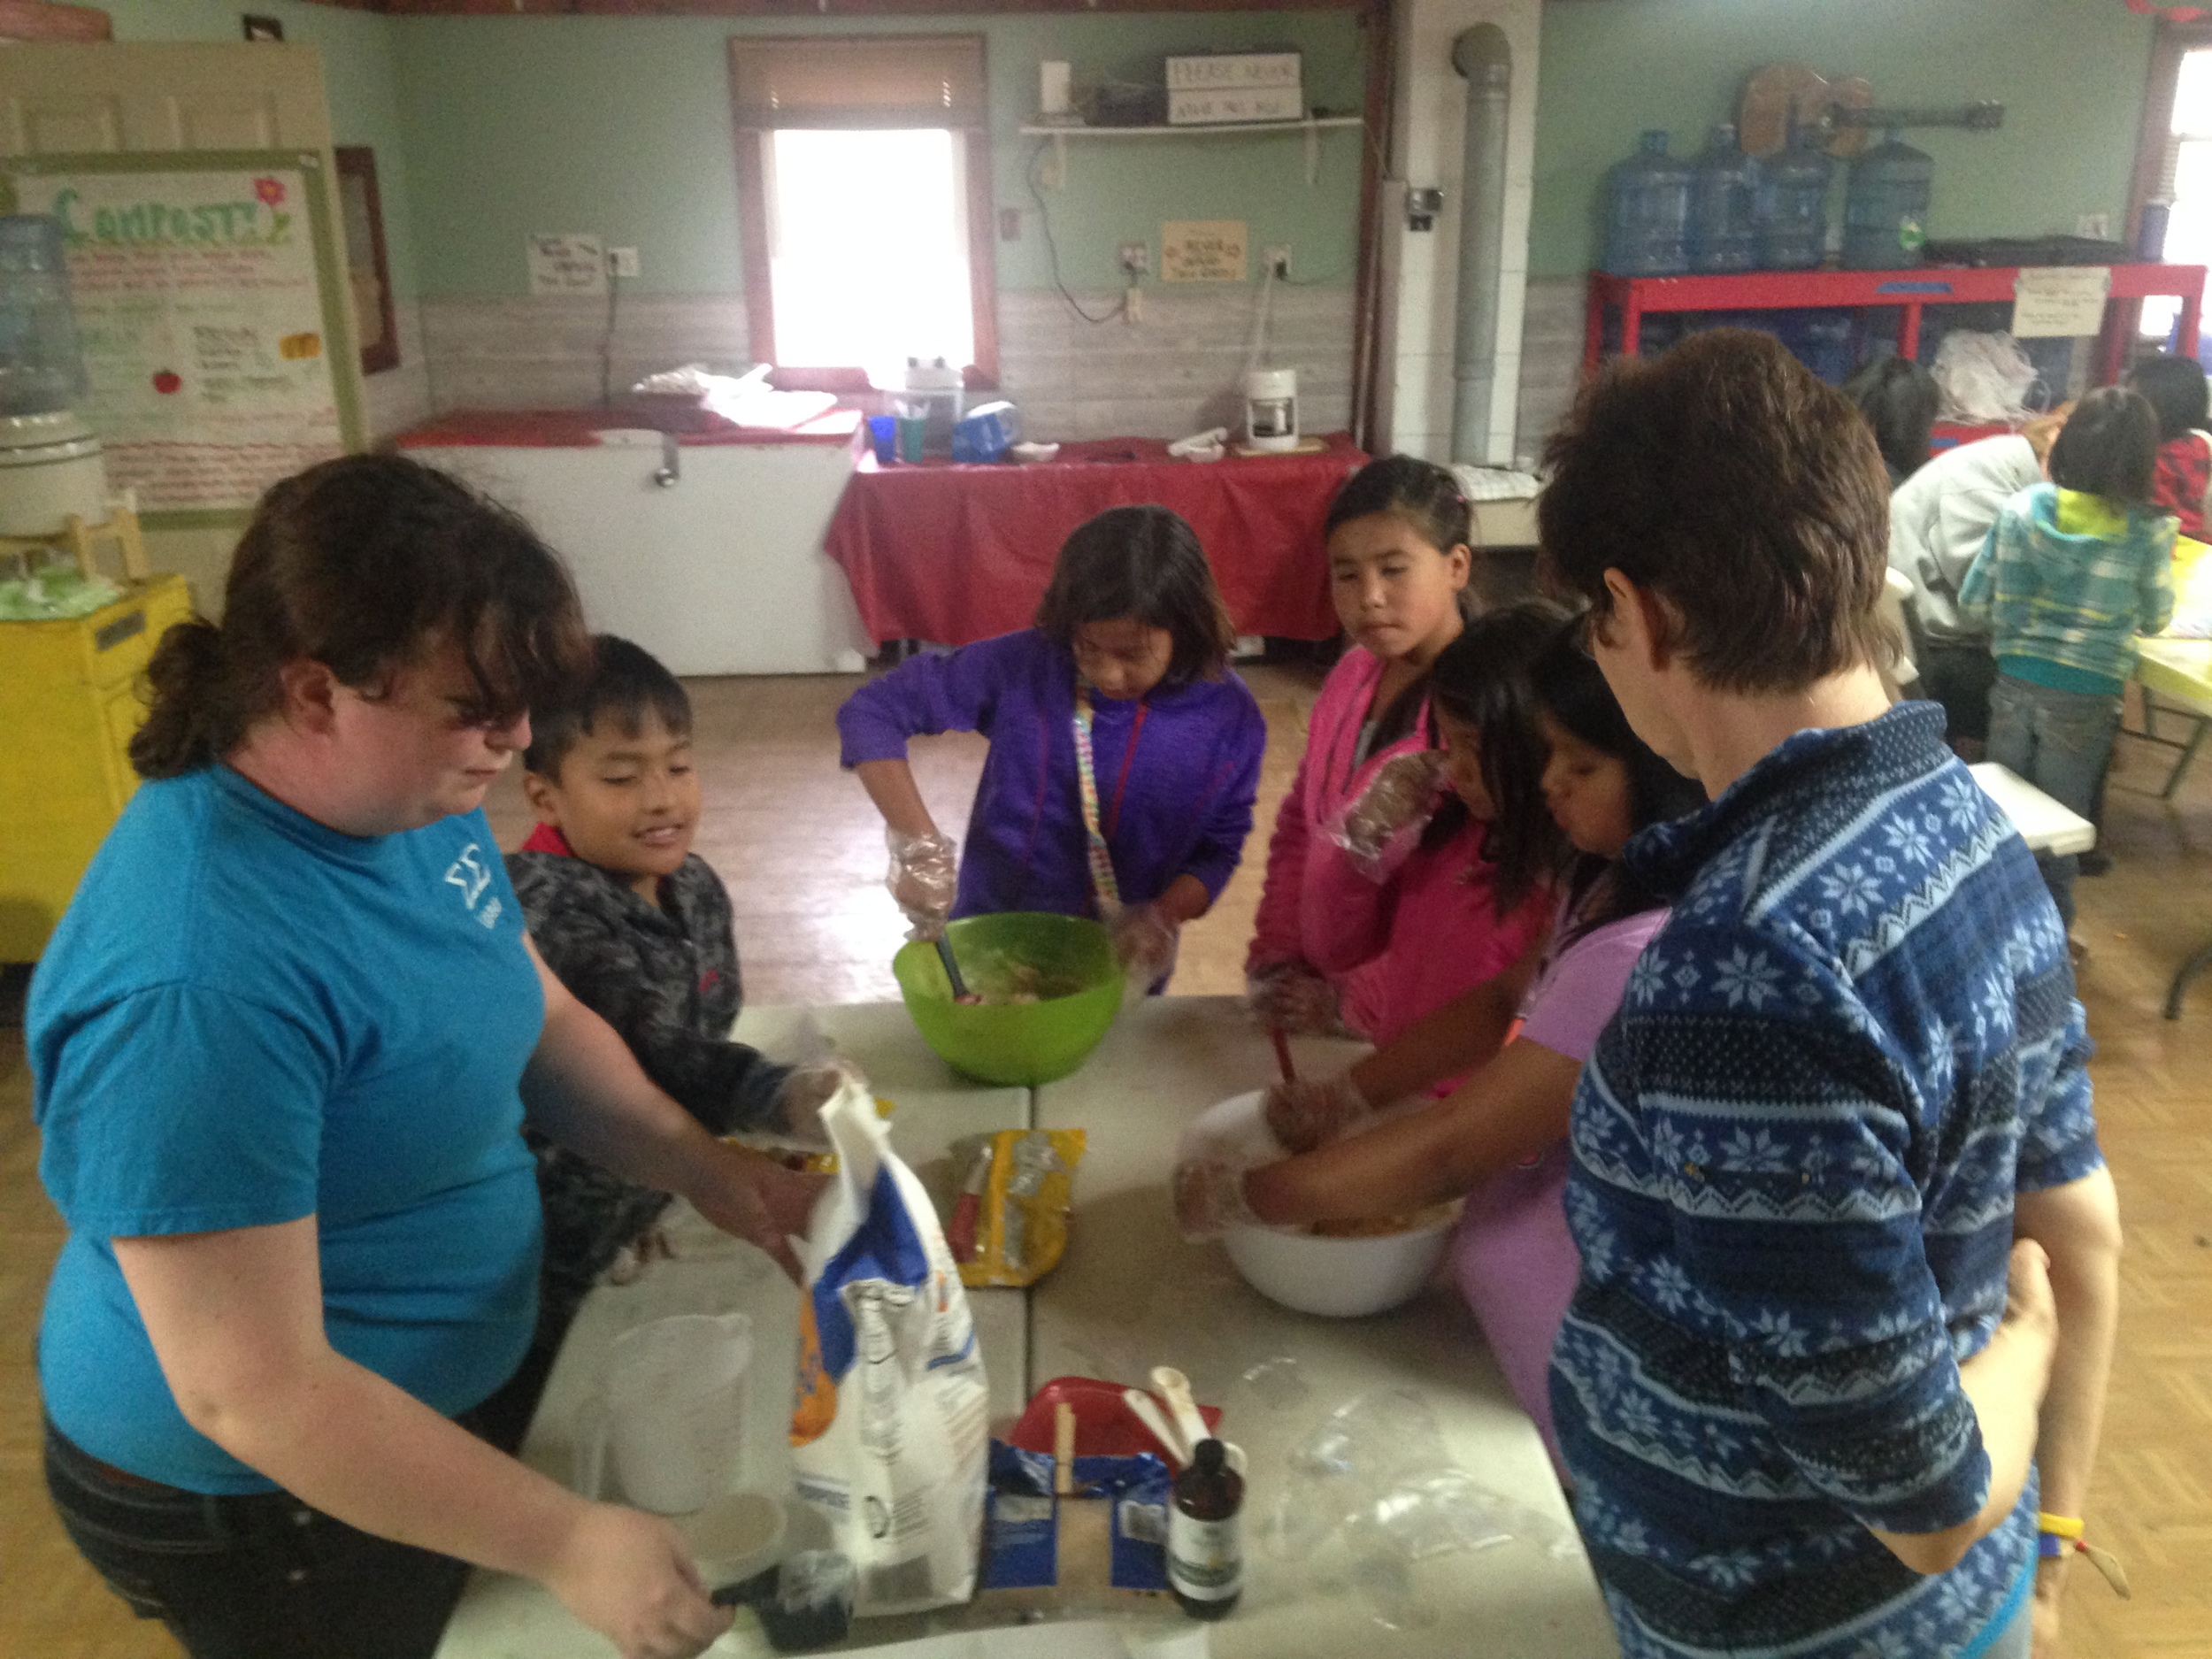 Fun with food:  The kids make chocolate chip cookies with Rachel and Laura Westby for the town-wide meal on Friday!